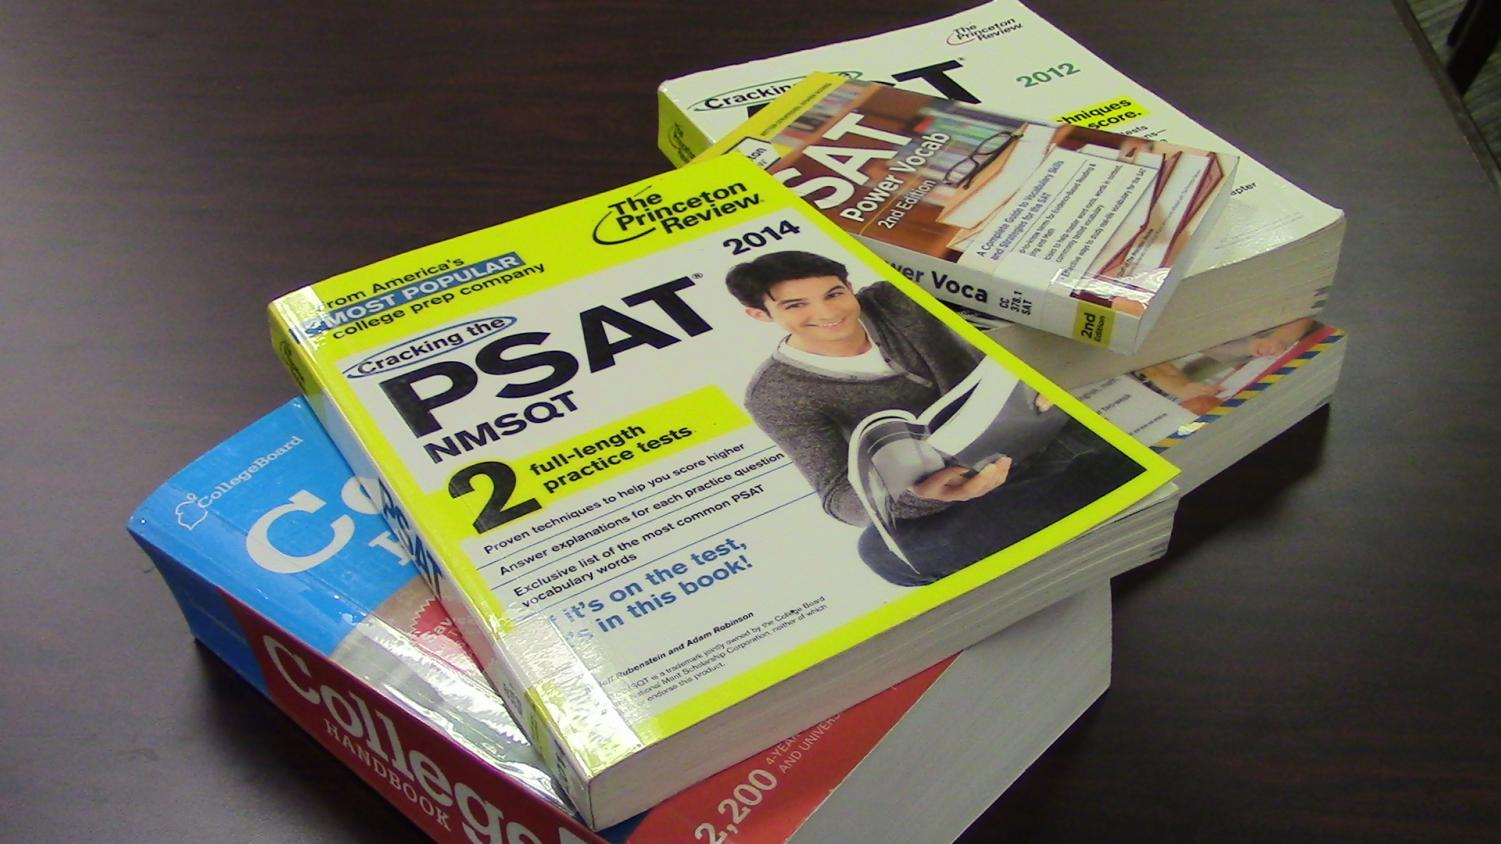 These are some of the books that students can use to study for the SAT and ACT.